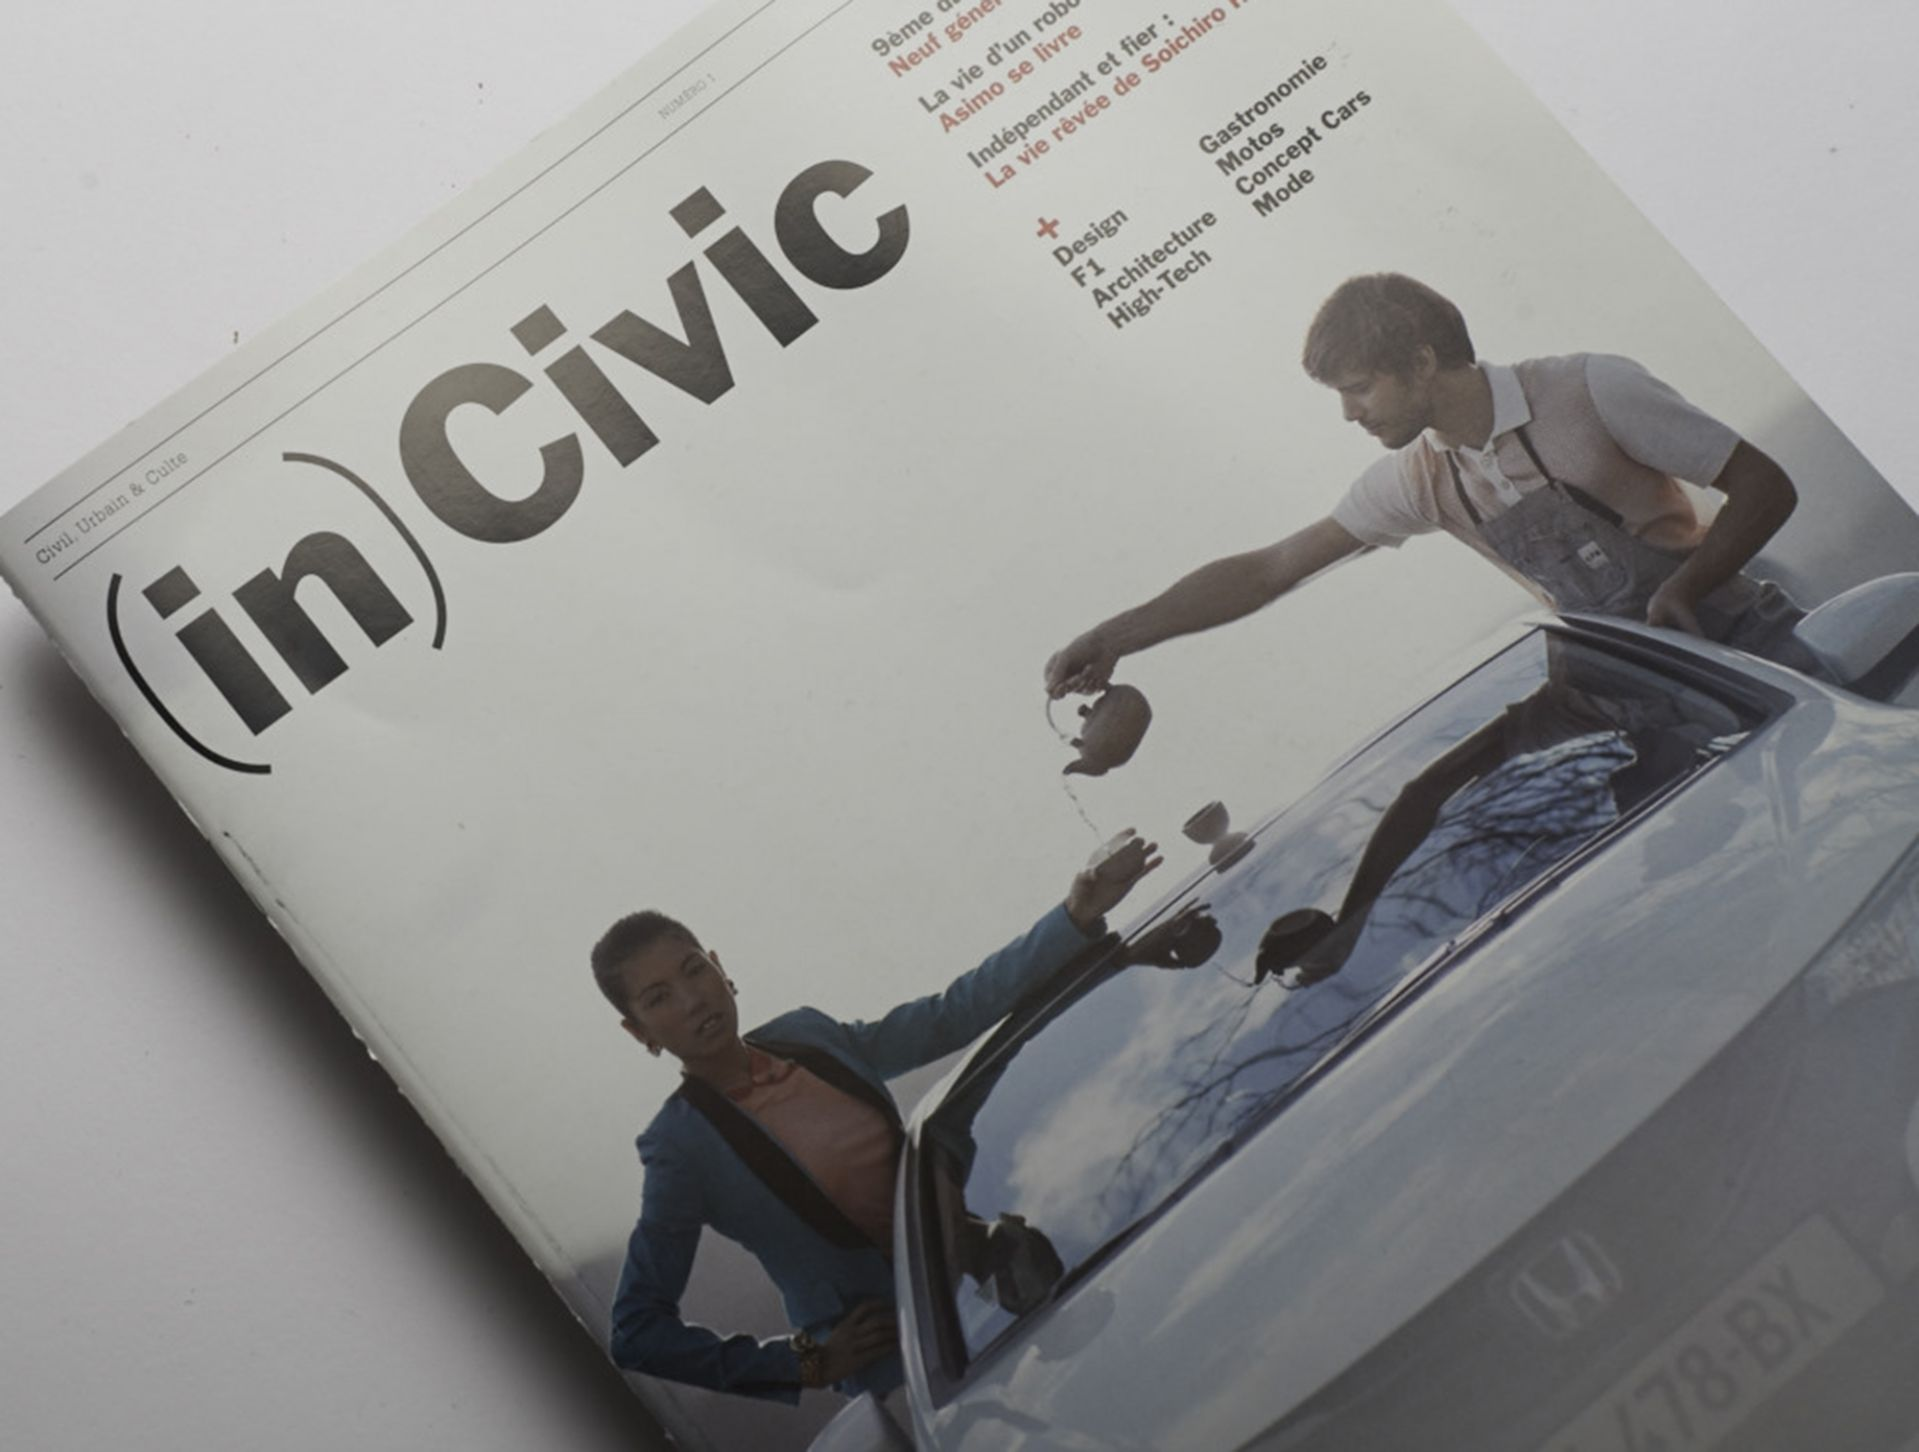 (in)Civic brand magazine